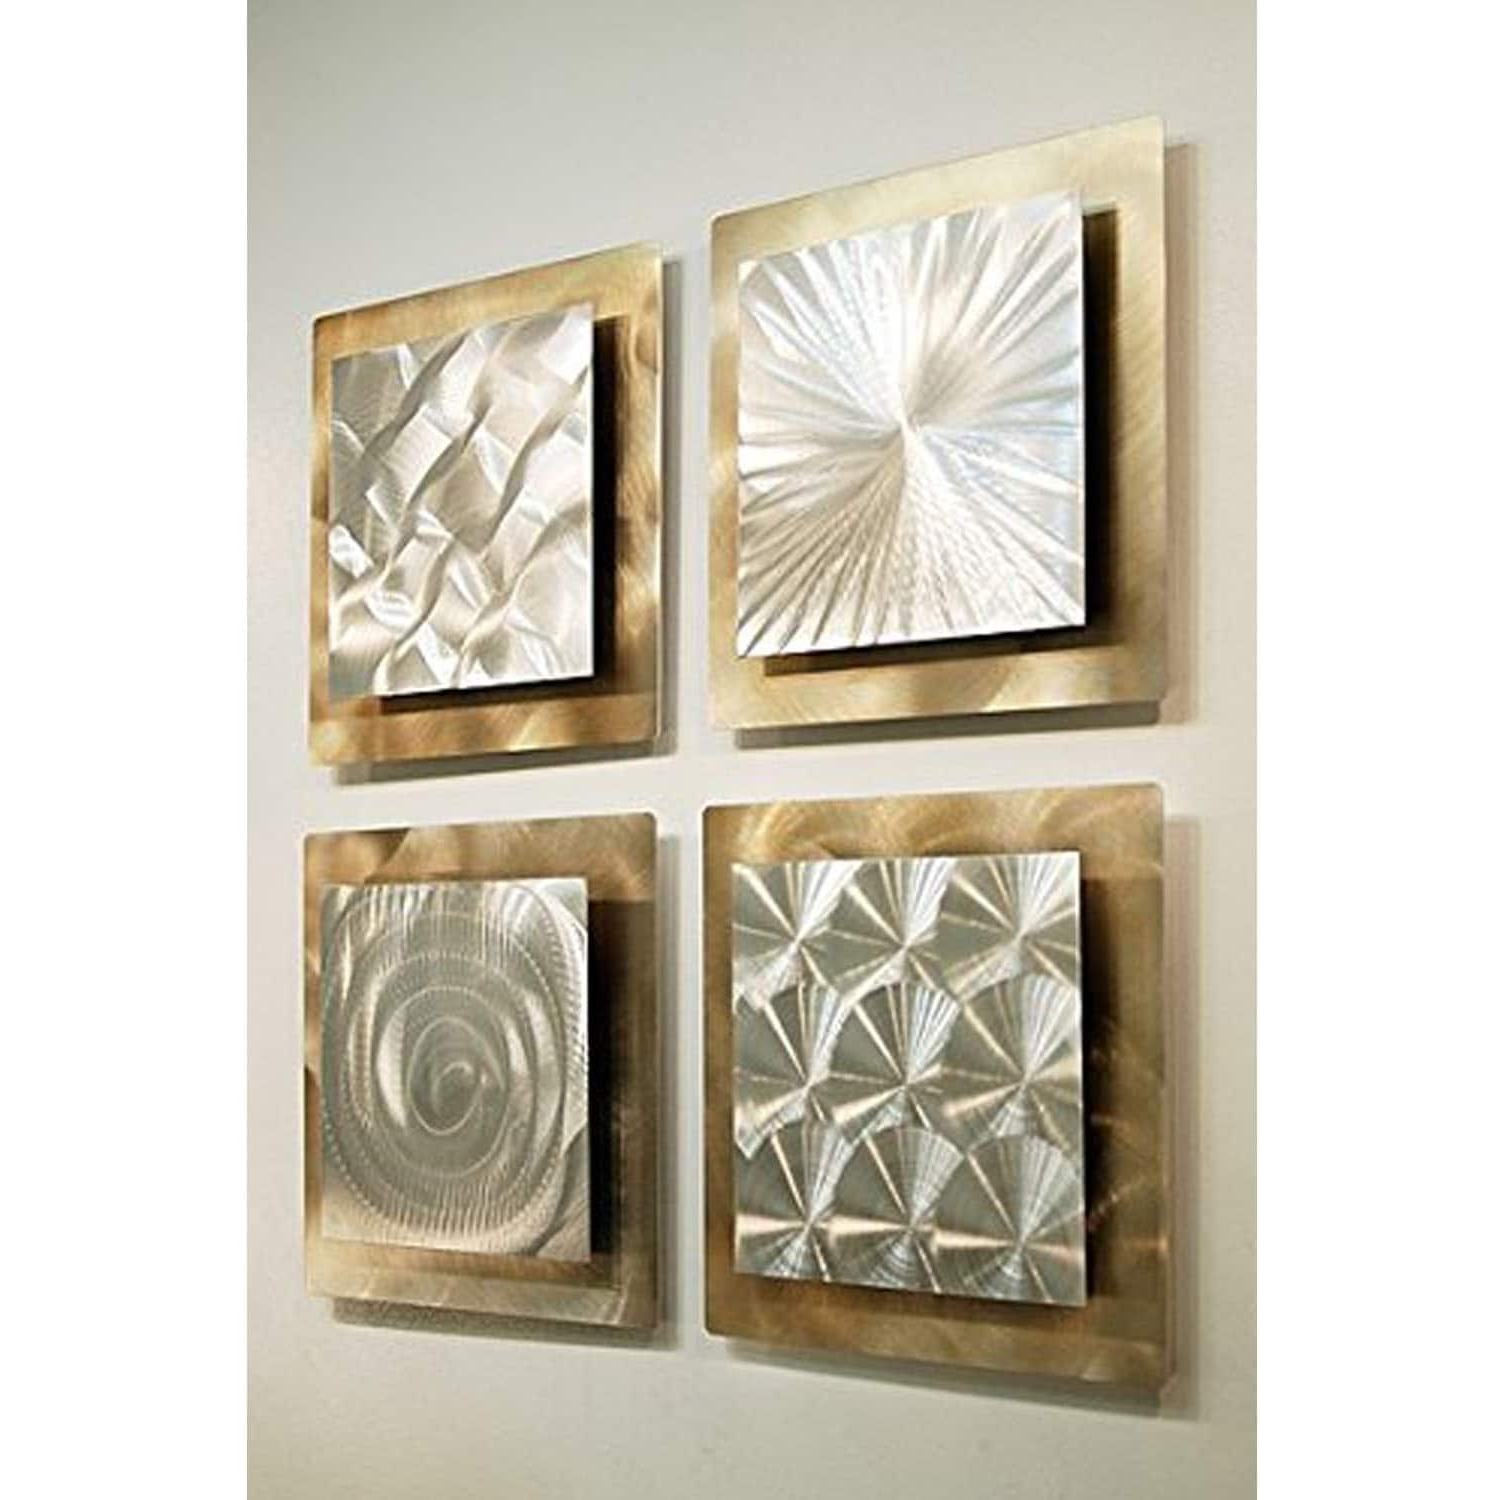 Statements2000 Set Of 4 Gold / Silver Metal Wall Art Accentjon Within Most Recent Silver And Gold Wall Art (View 11 of 15)